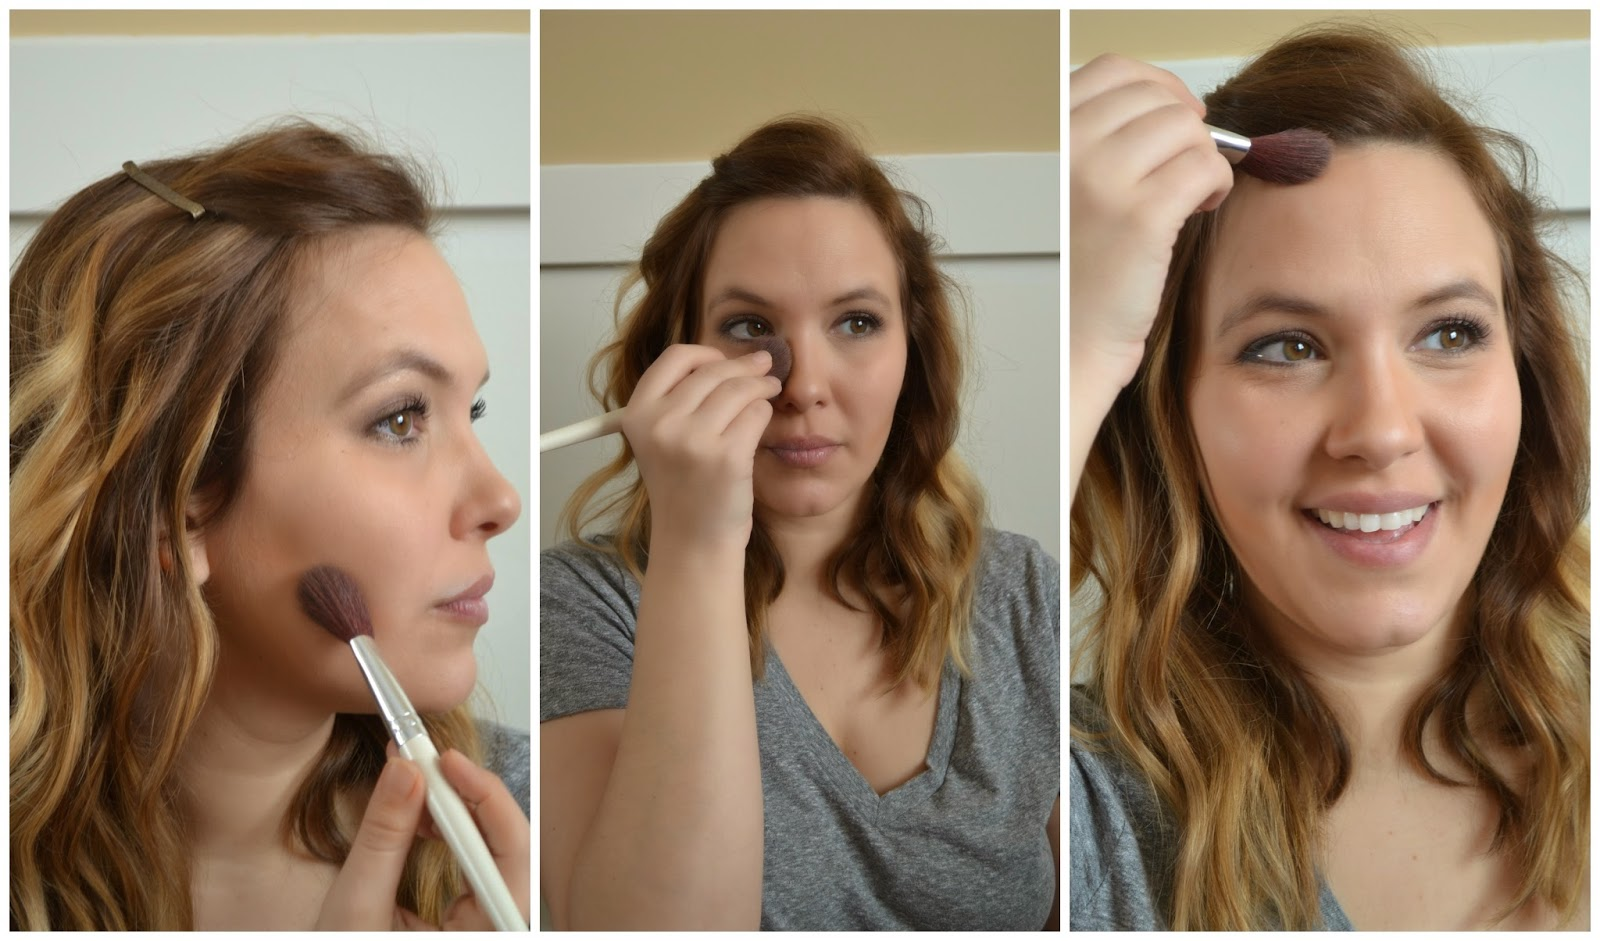 I Use Bare Minerals Concealer In Honey Bisque I Realize It Is A Concealer,  But It Applies So Well As A Contouring Powder I Use Elf's Blending Brush  To